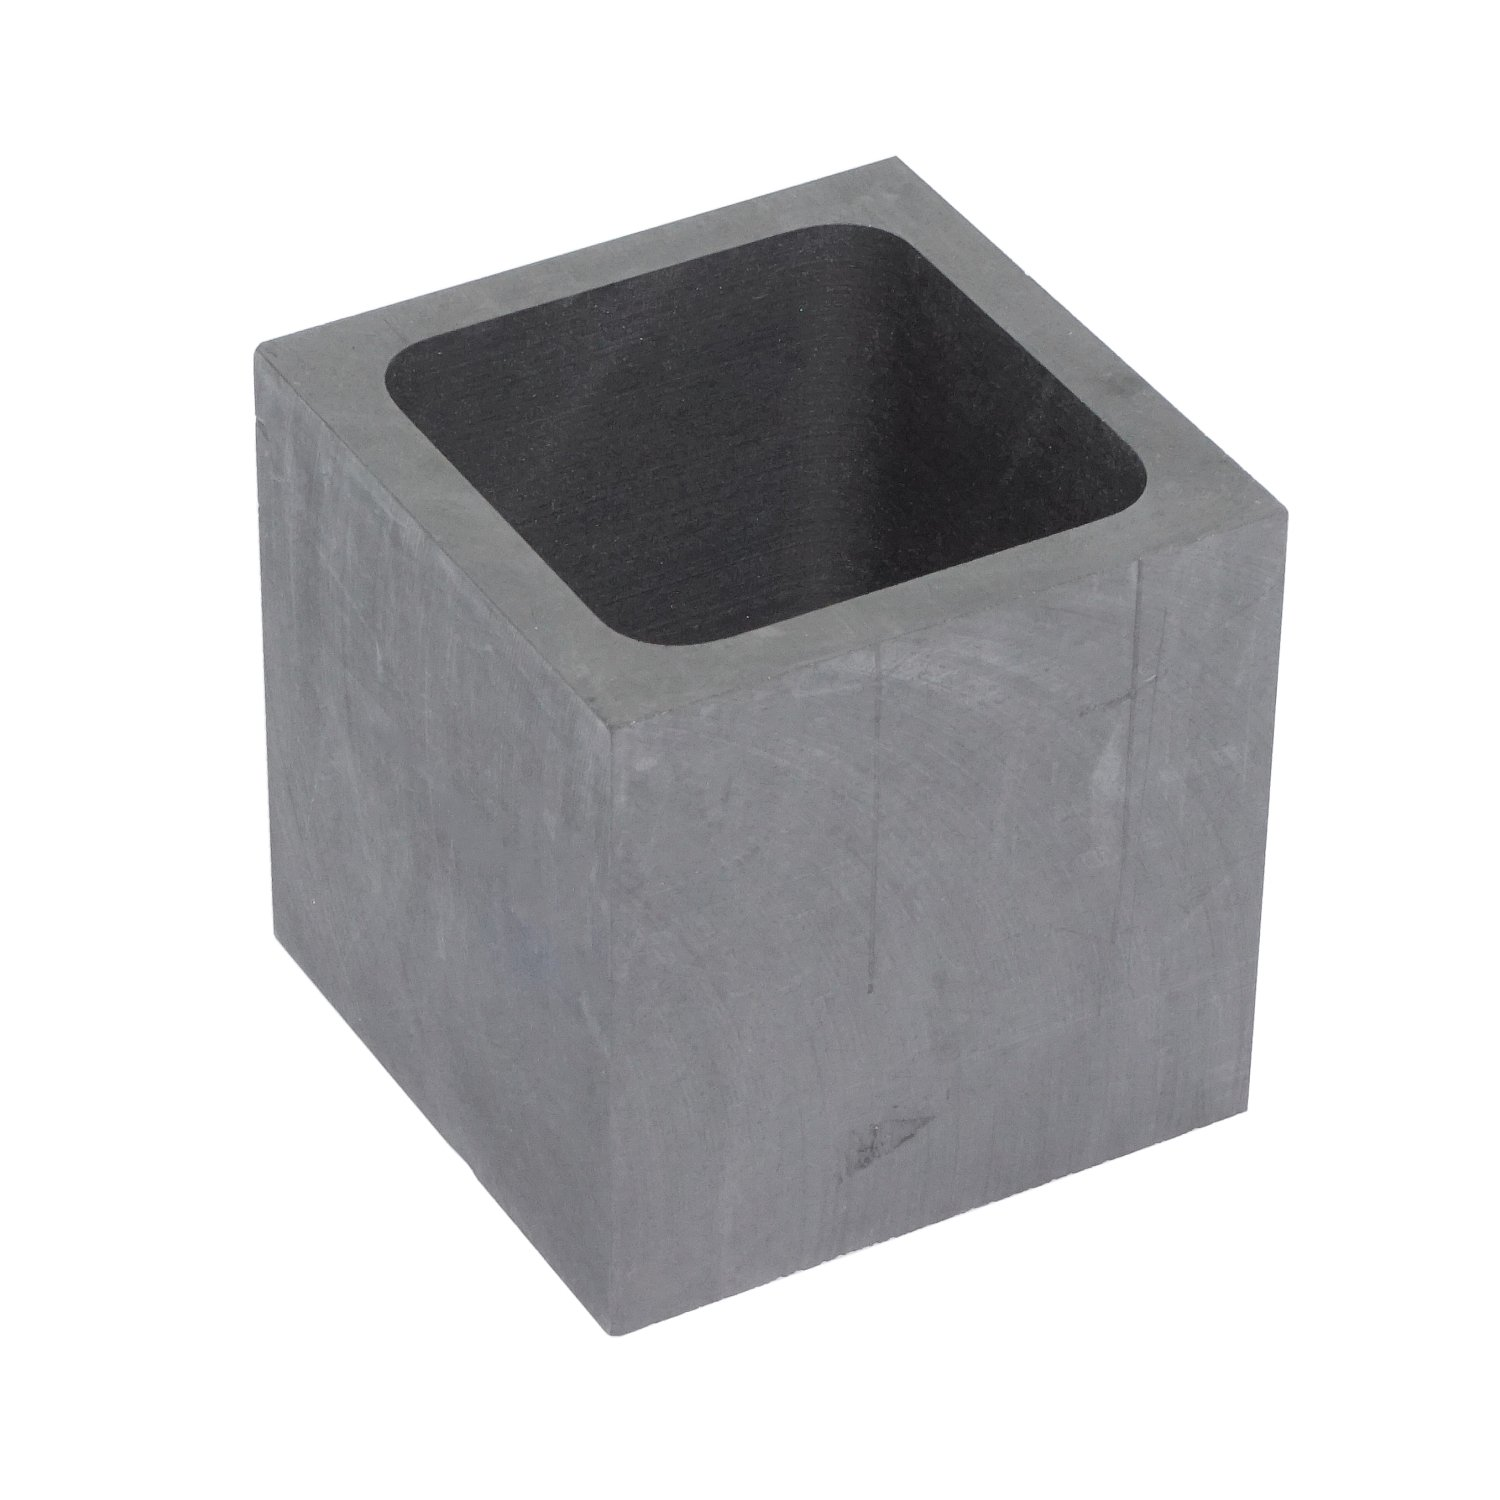 2 fl oz Pure Graphite Crucible Refining Casting Ingot Mold for Gold Silver Aluminum Copper Metals